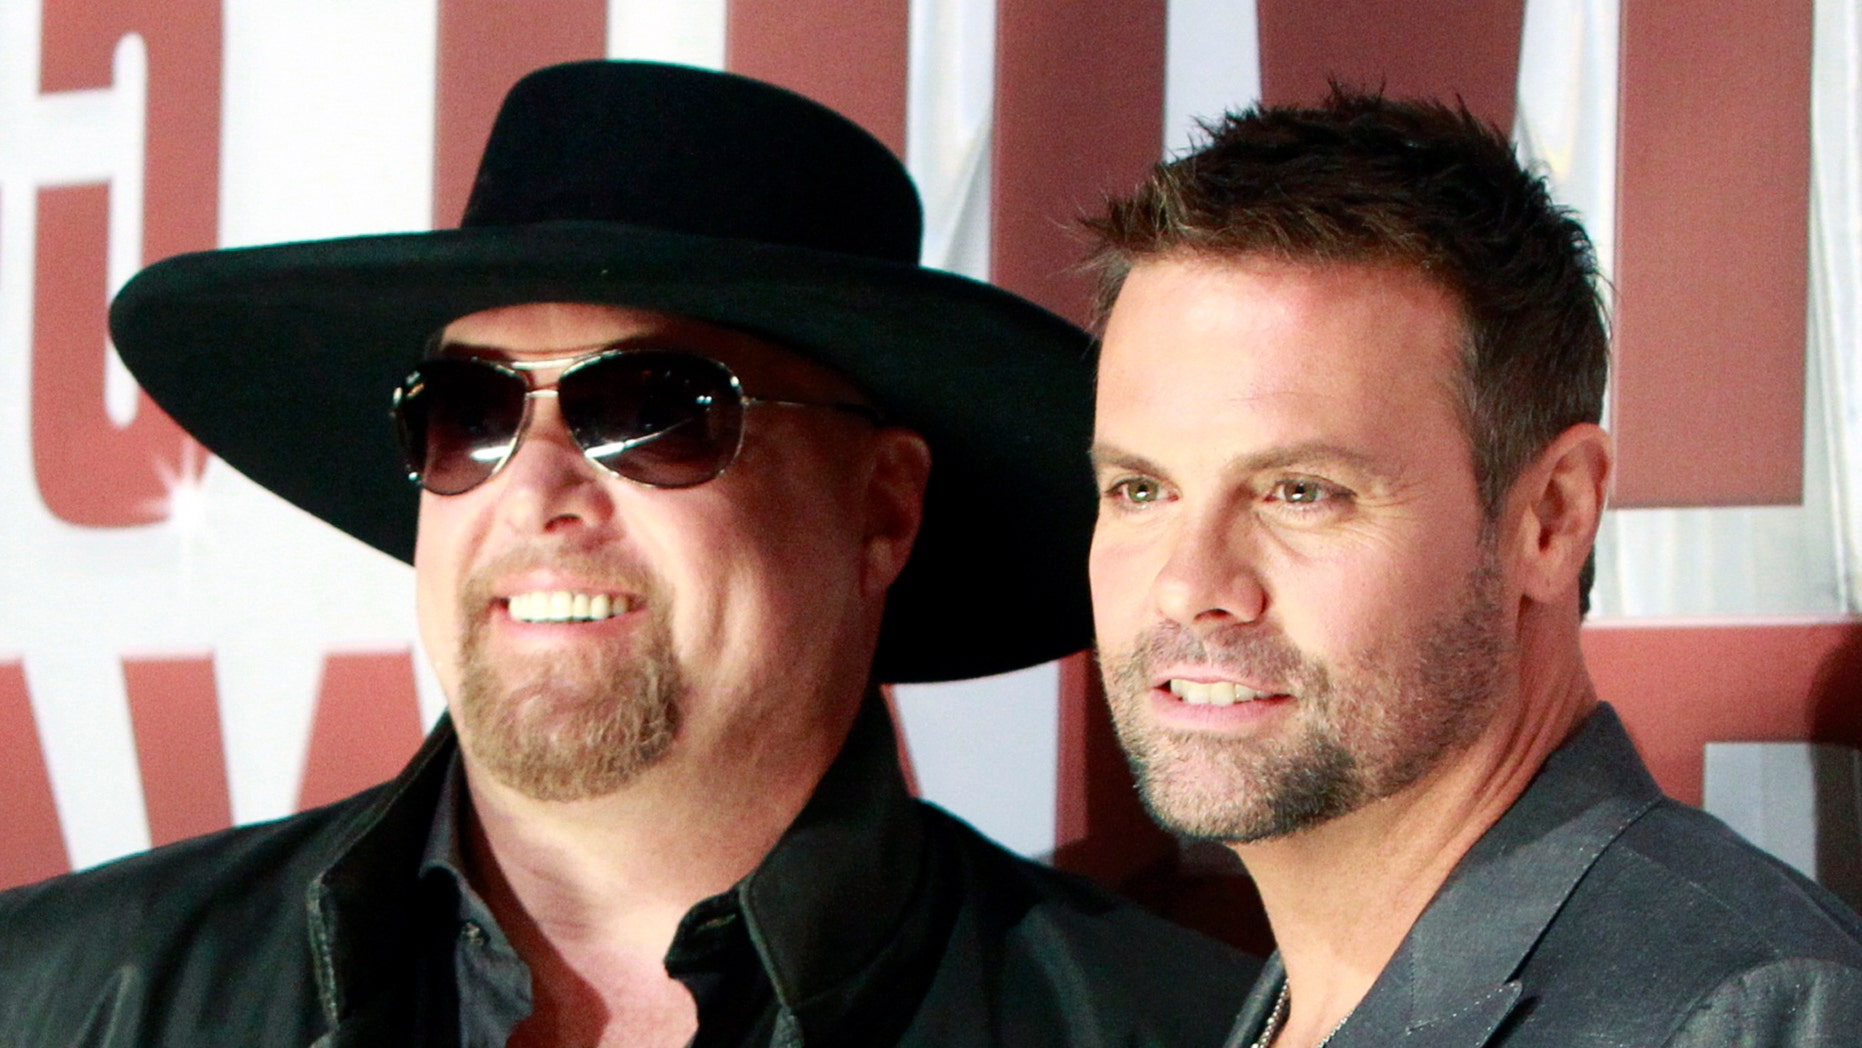 Country music duo Montgomery Gentry, Eddie Montgomery (L) and Troy Gentry, arrives at the 45th Country Music Association Awards in Nashville, Tennessee November 9, 2011.